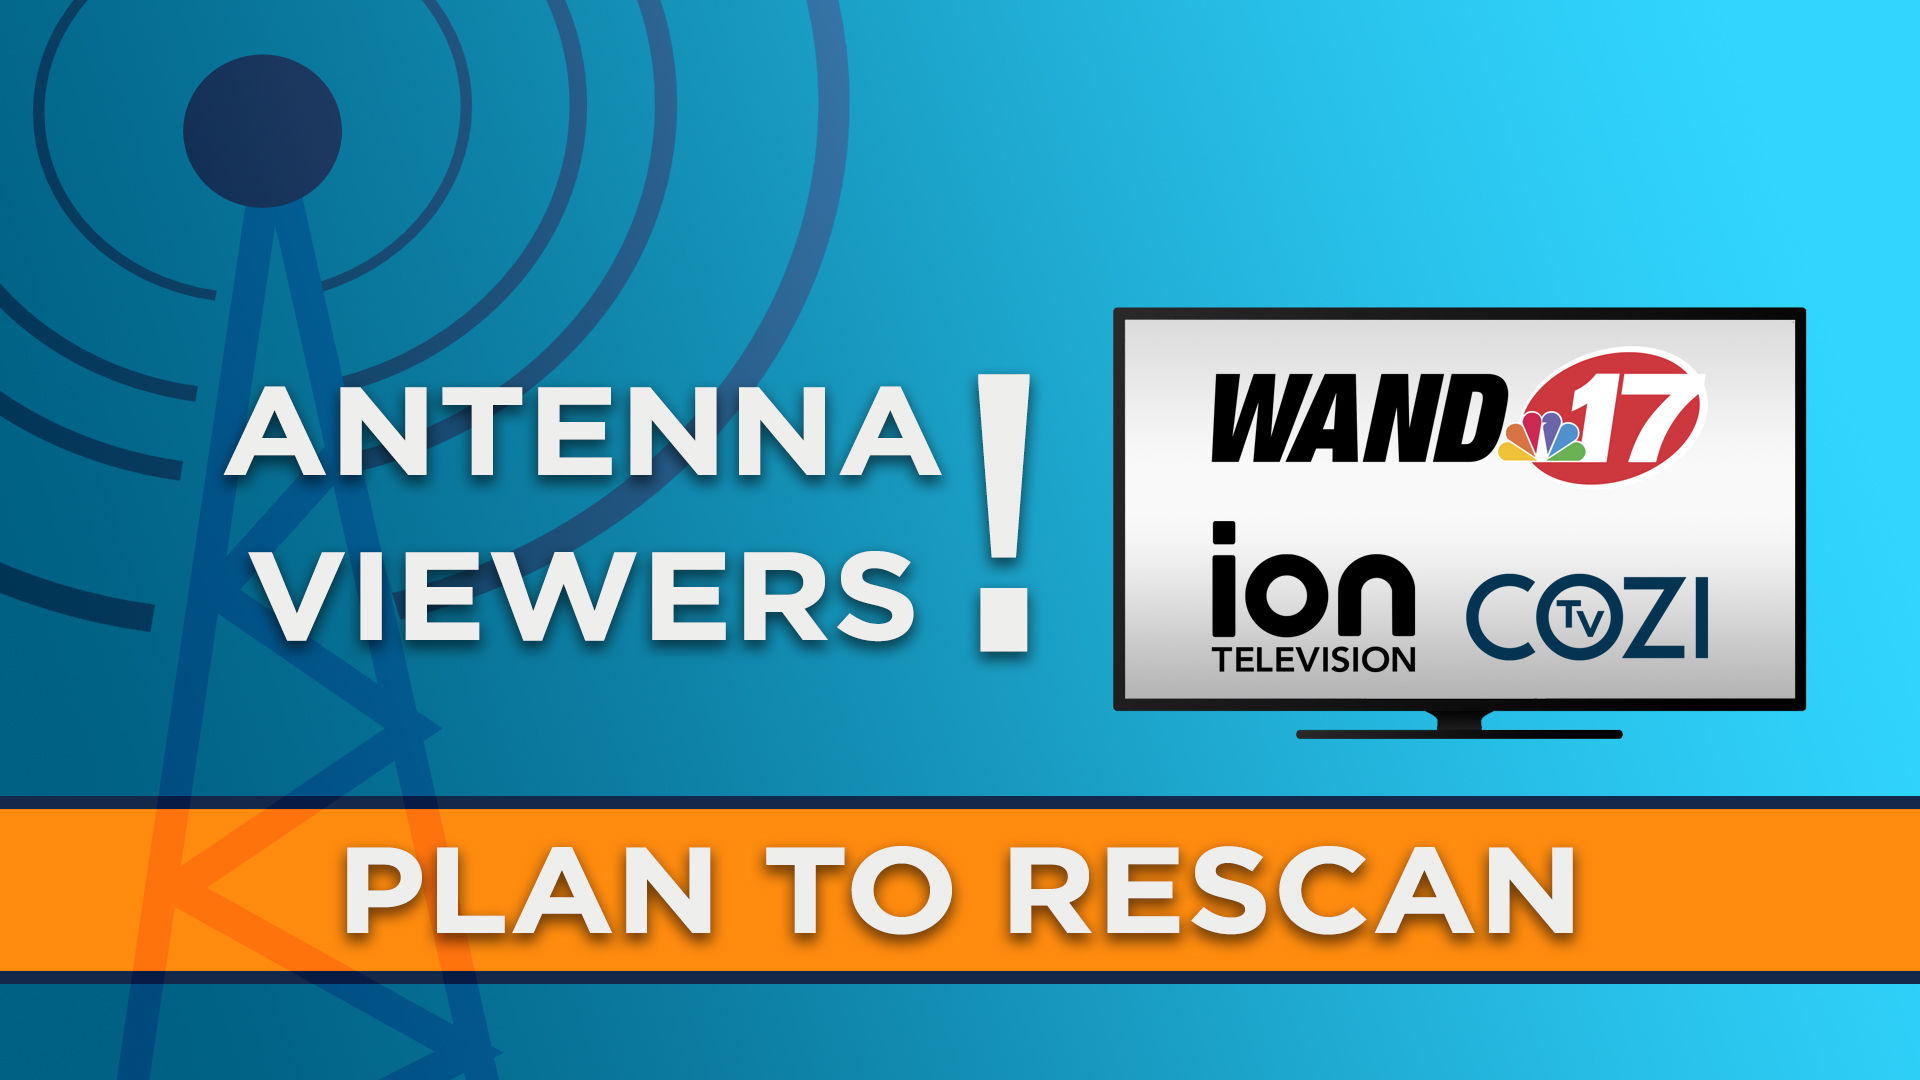 Tv In Wand Wand Re-scan For Over-the-air And Antenna | Community | Wandtv.com